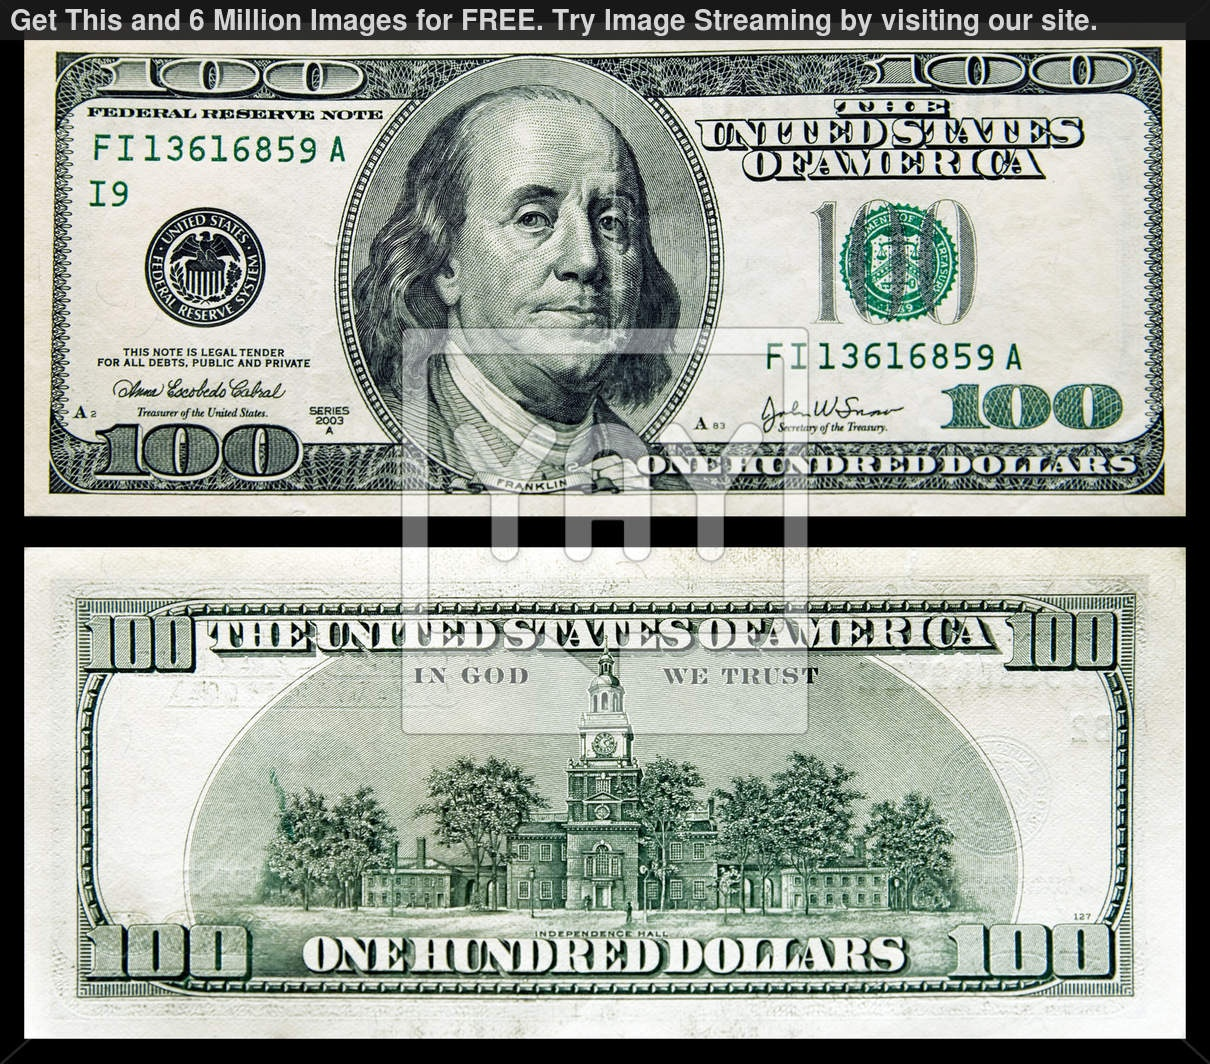 14 Hundred Dollar Bill Psd Images - 100 Dollar Bill Without Face - Free Printable 100 Dollar Bill